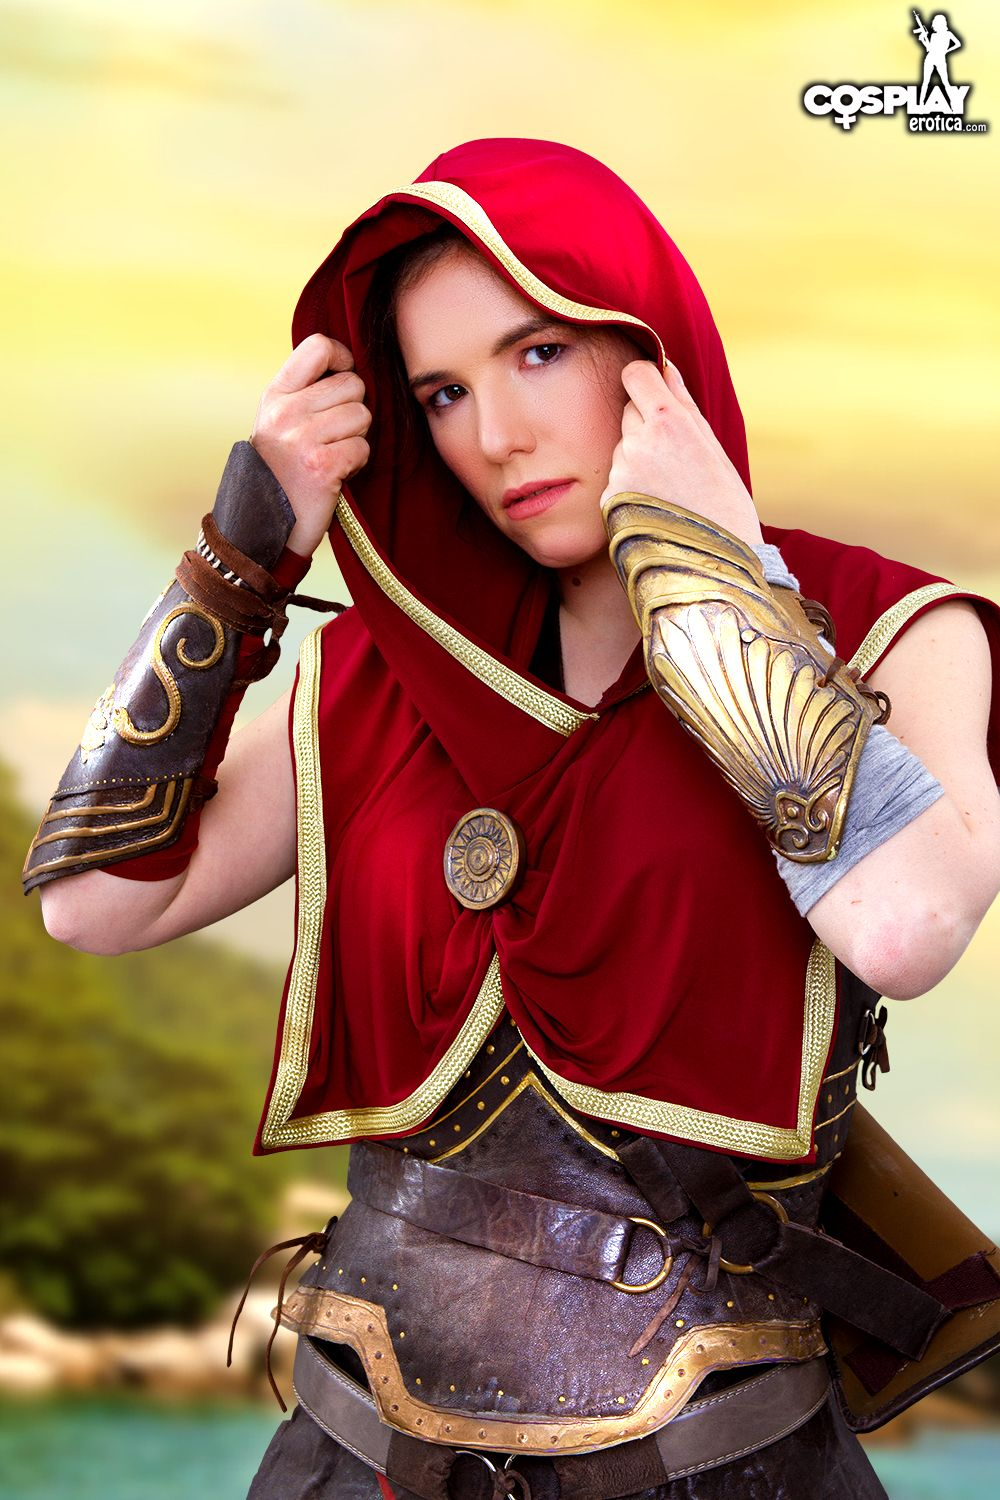 Cosplay Erotica's Cassie Is A Master Assassin